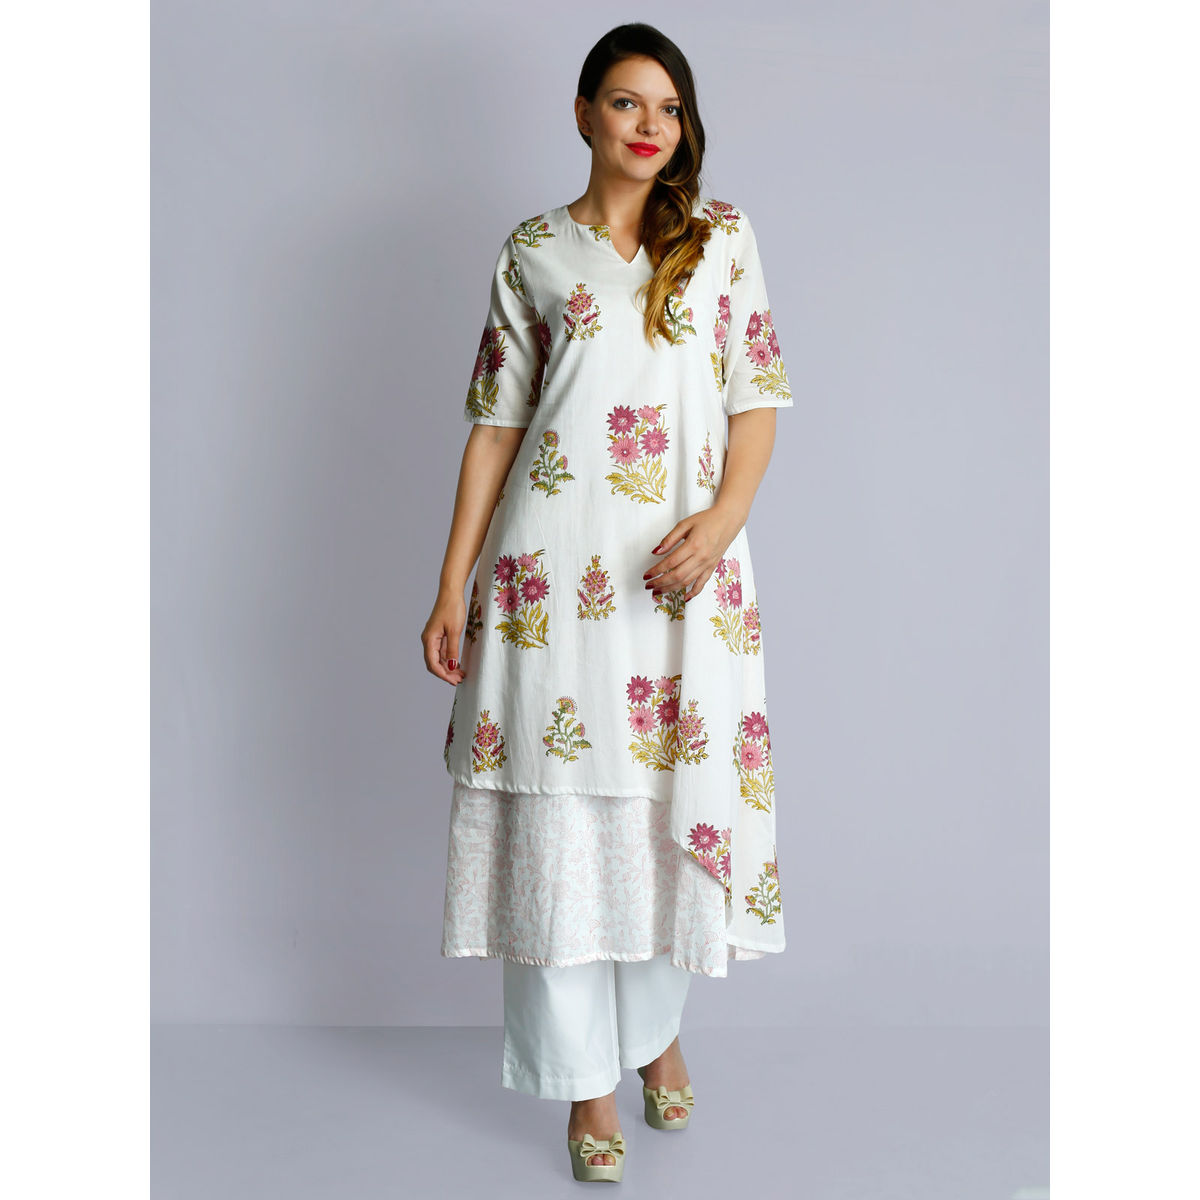 White cotton voile v neck hand block printed layered tunic